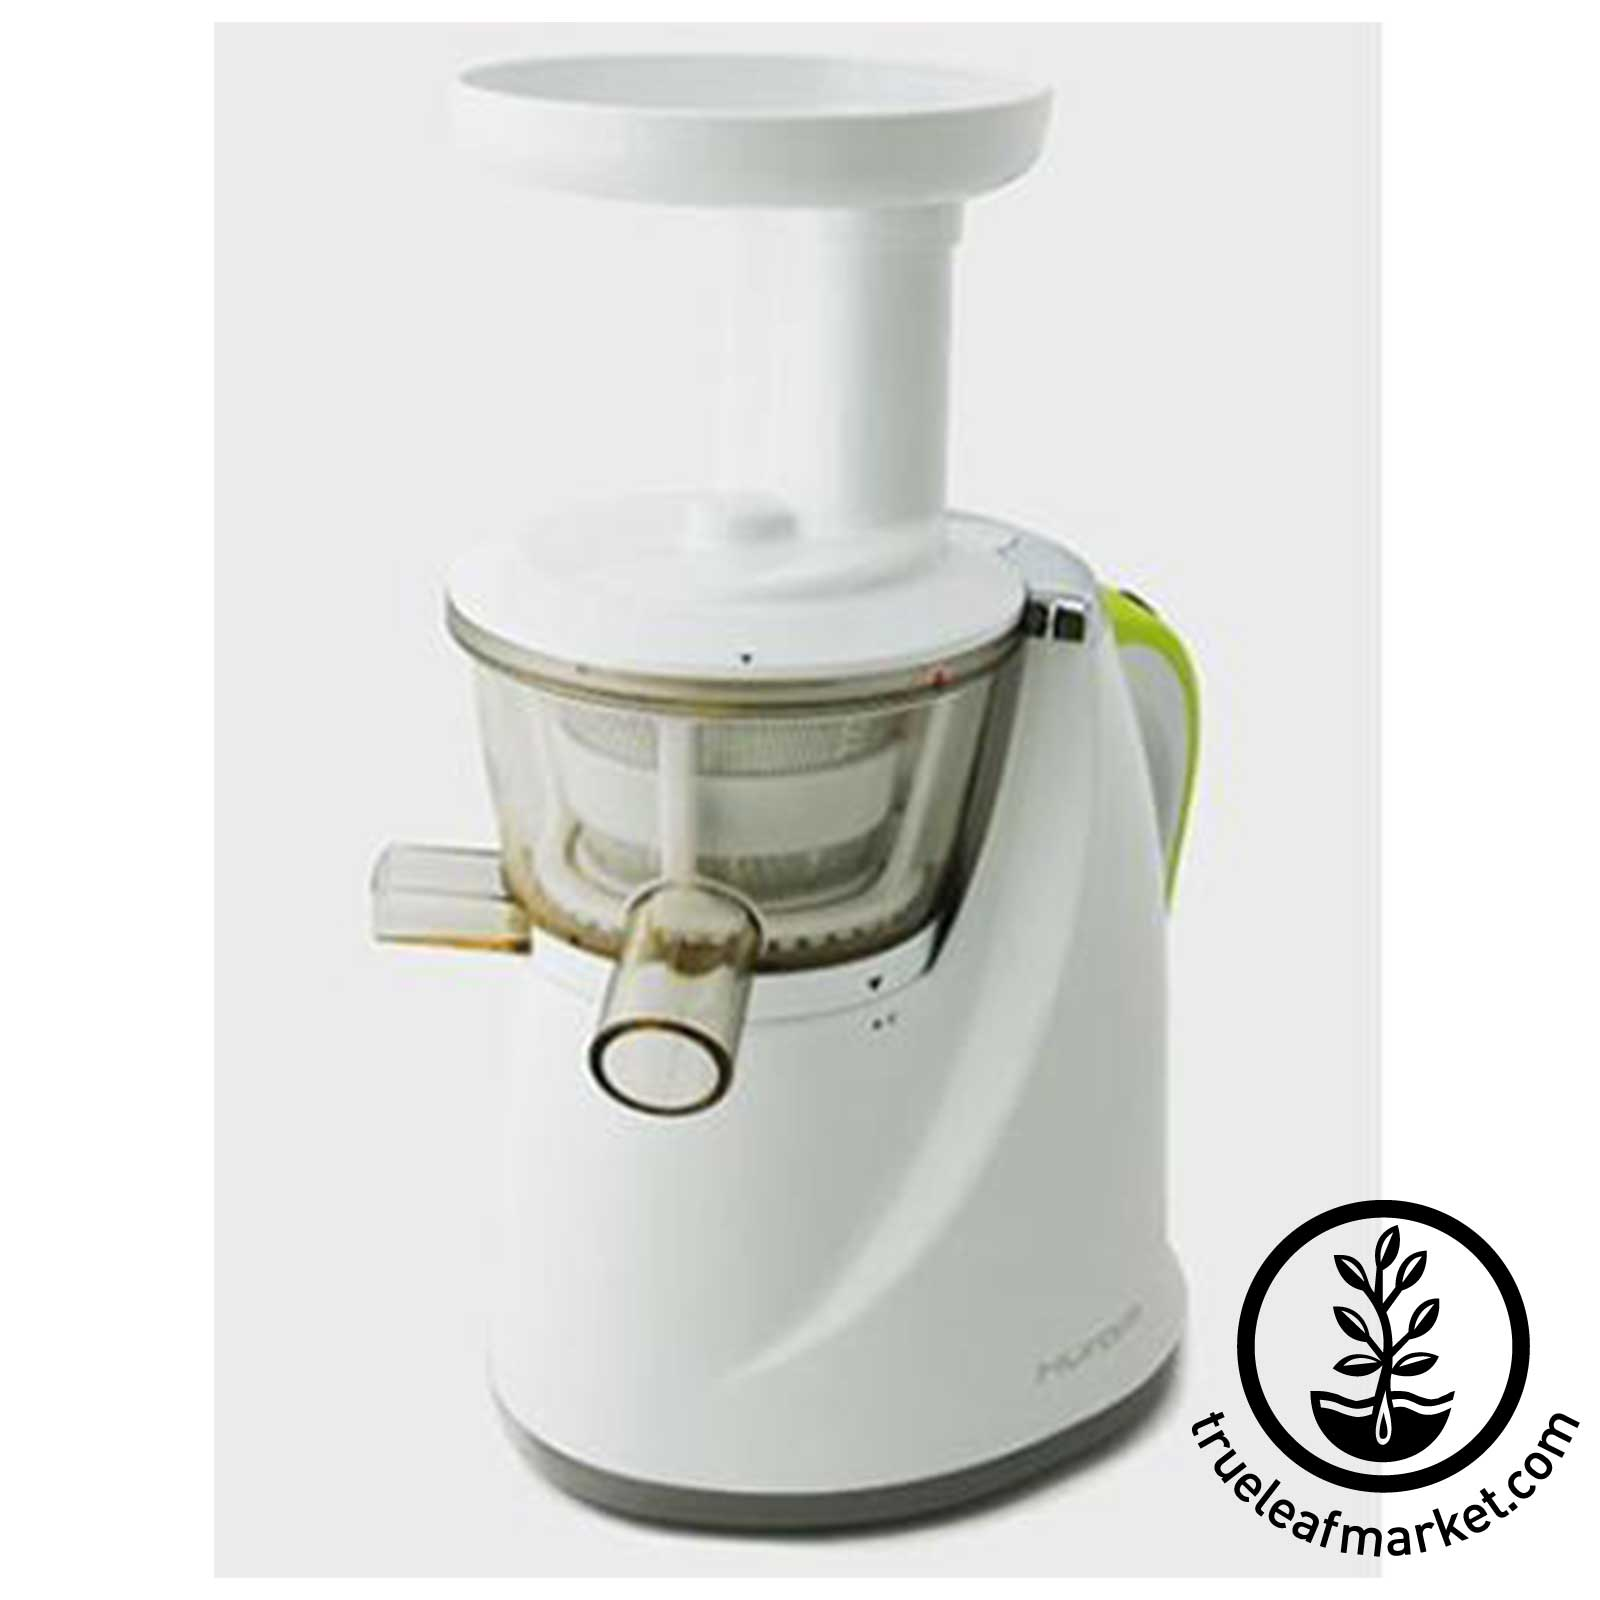 Tribest Slowstar Vertical Slow Juicer Reviews : Tribest Masticating vertical Slow Juicer Model SW-2000